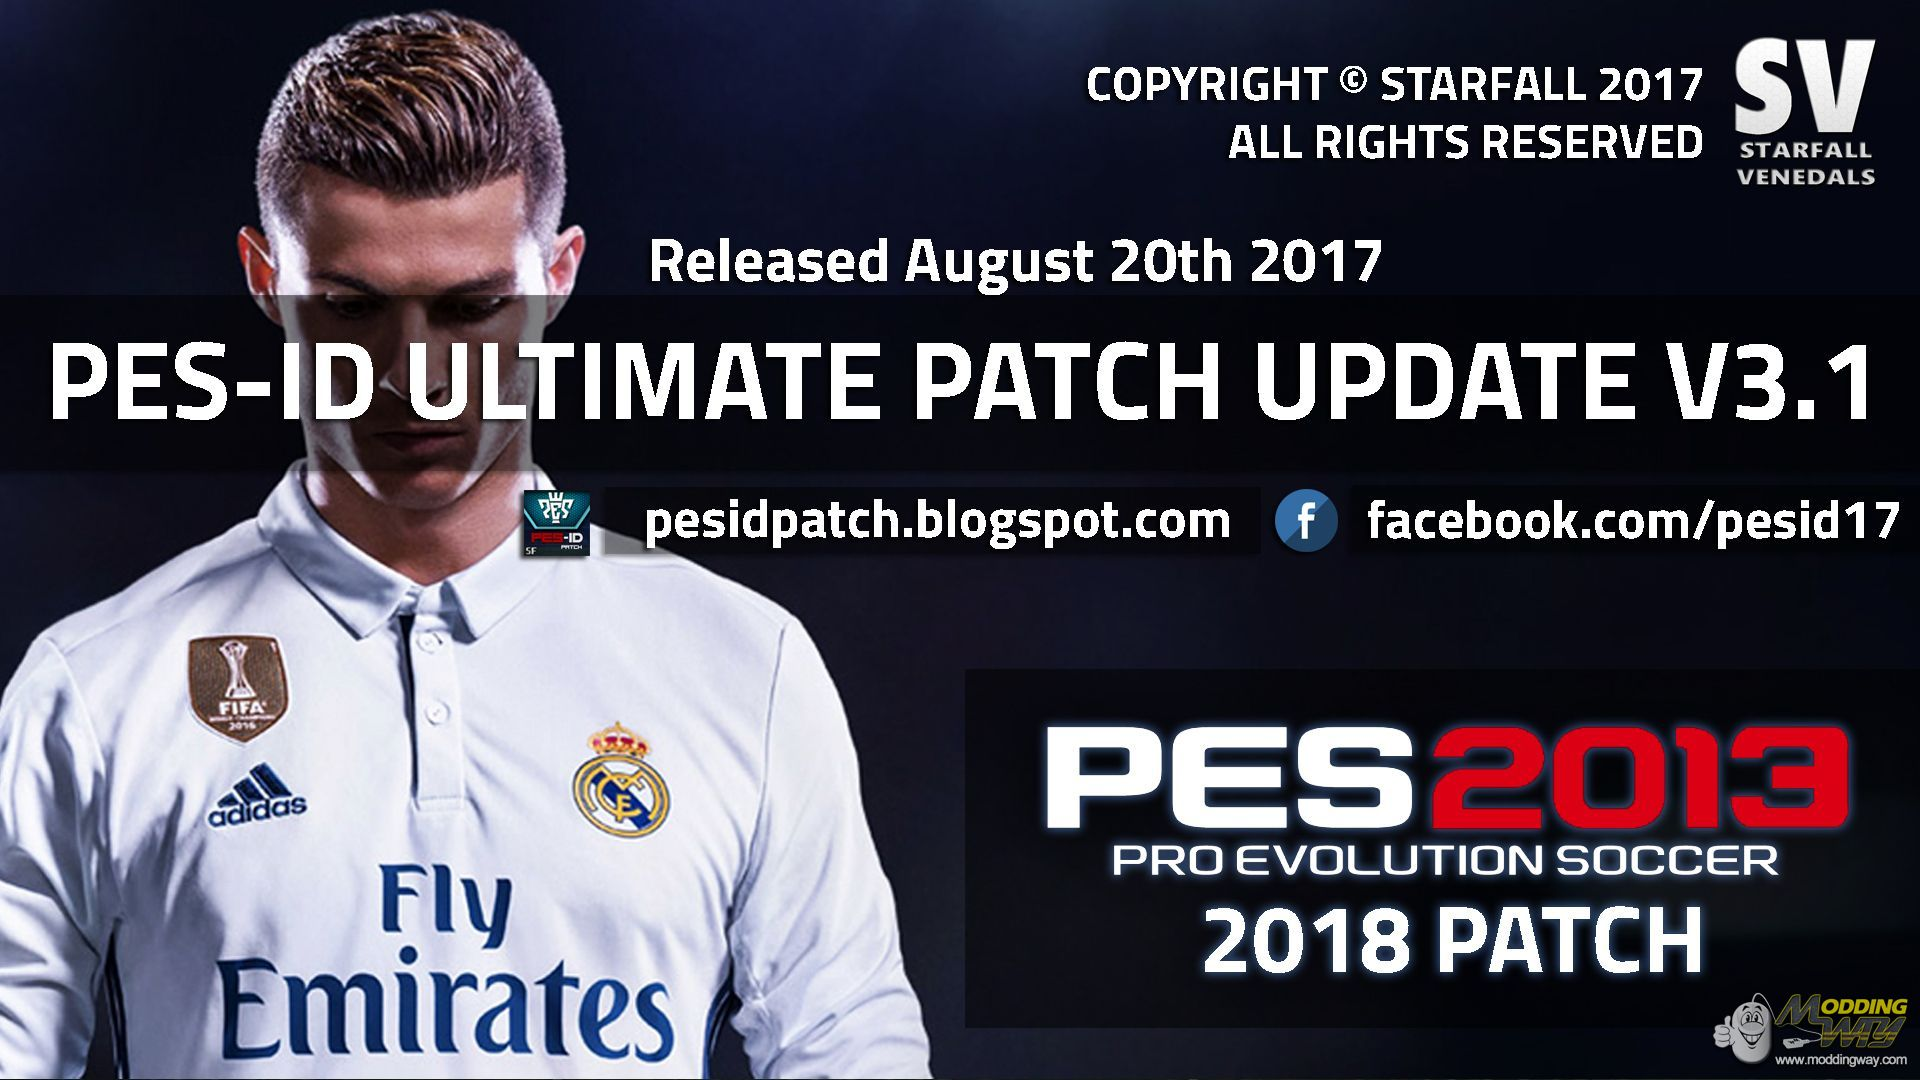 PES-ID Ultimate Patch 2013 Update v3 1 - Released[08/20/2017